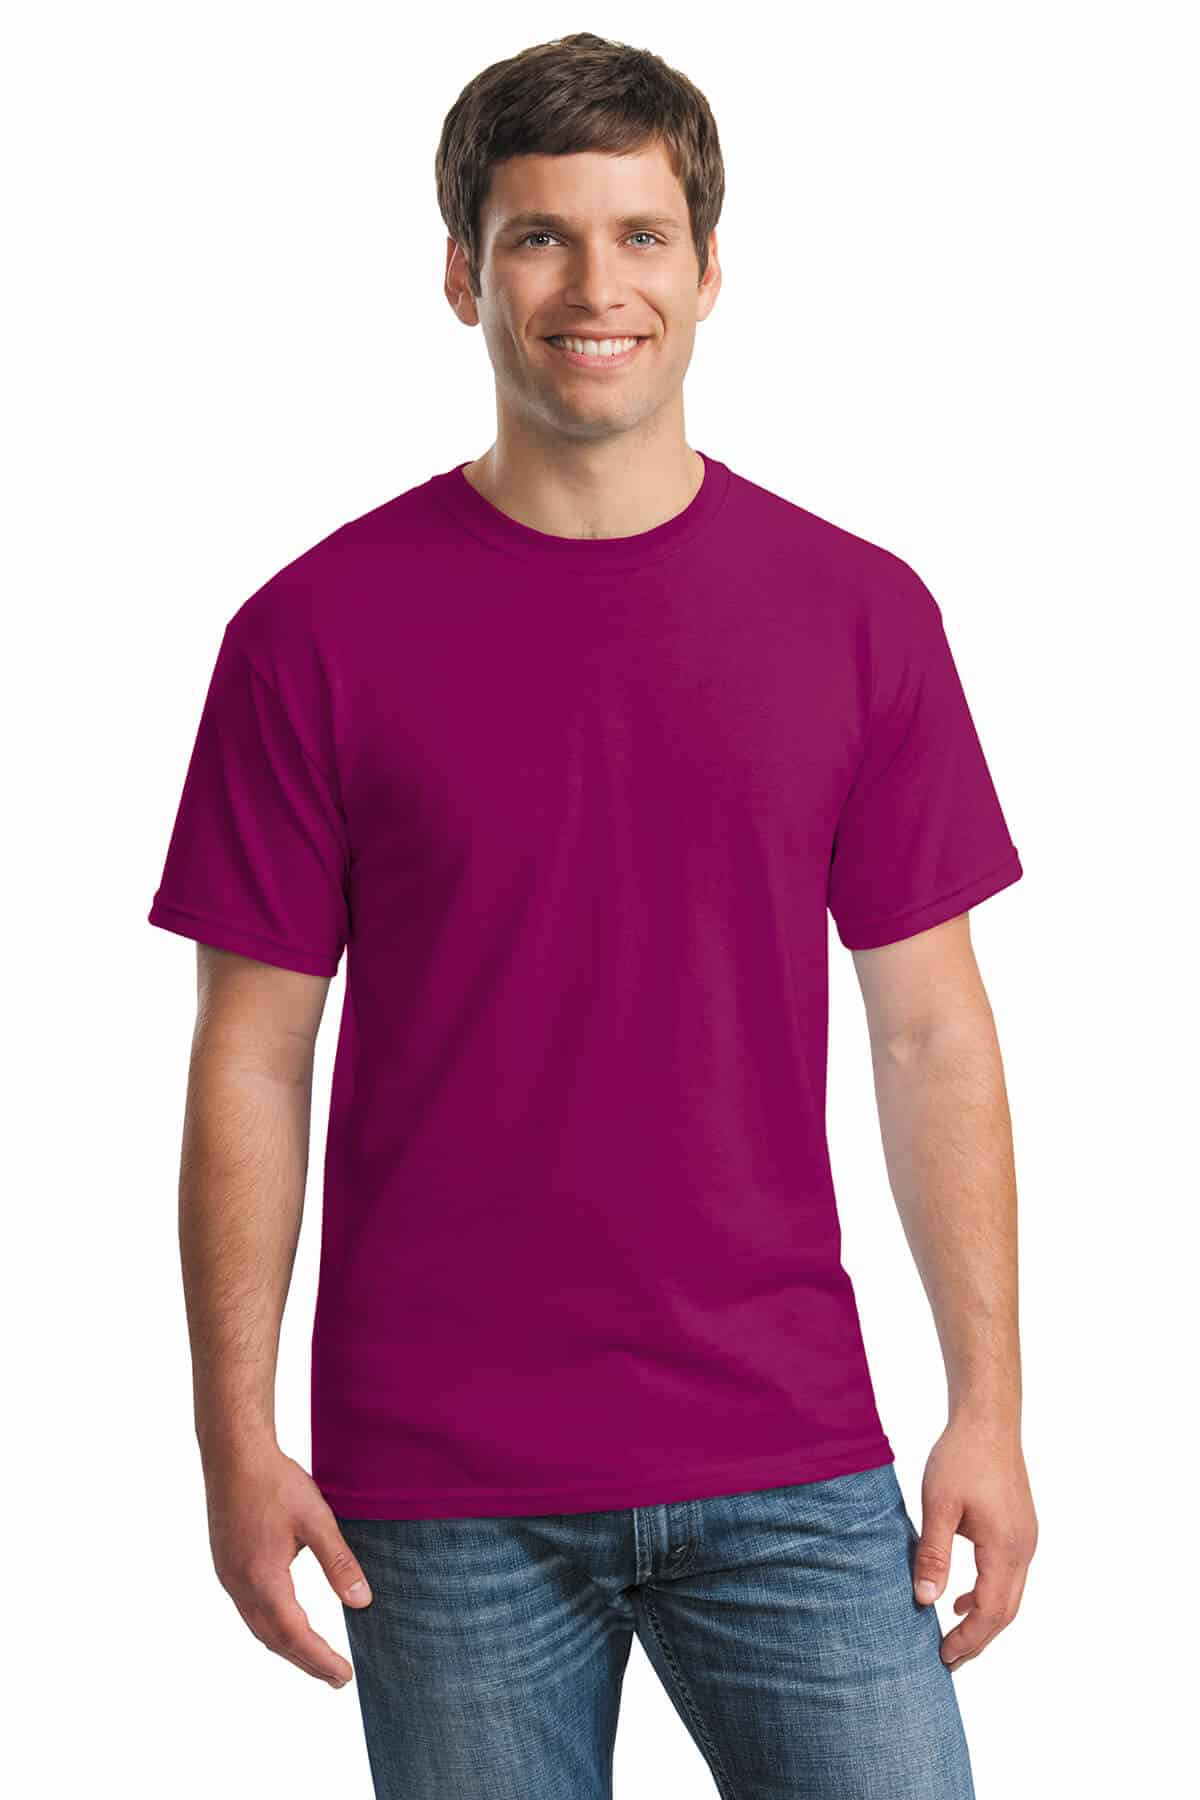 Berry Tee Front